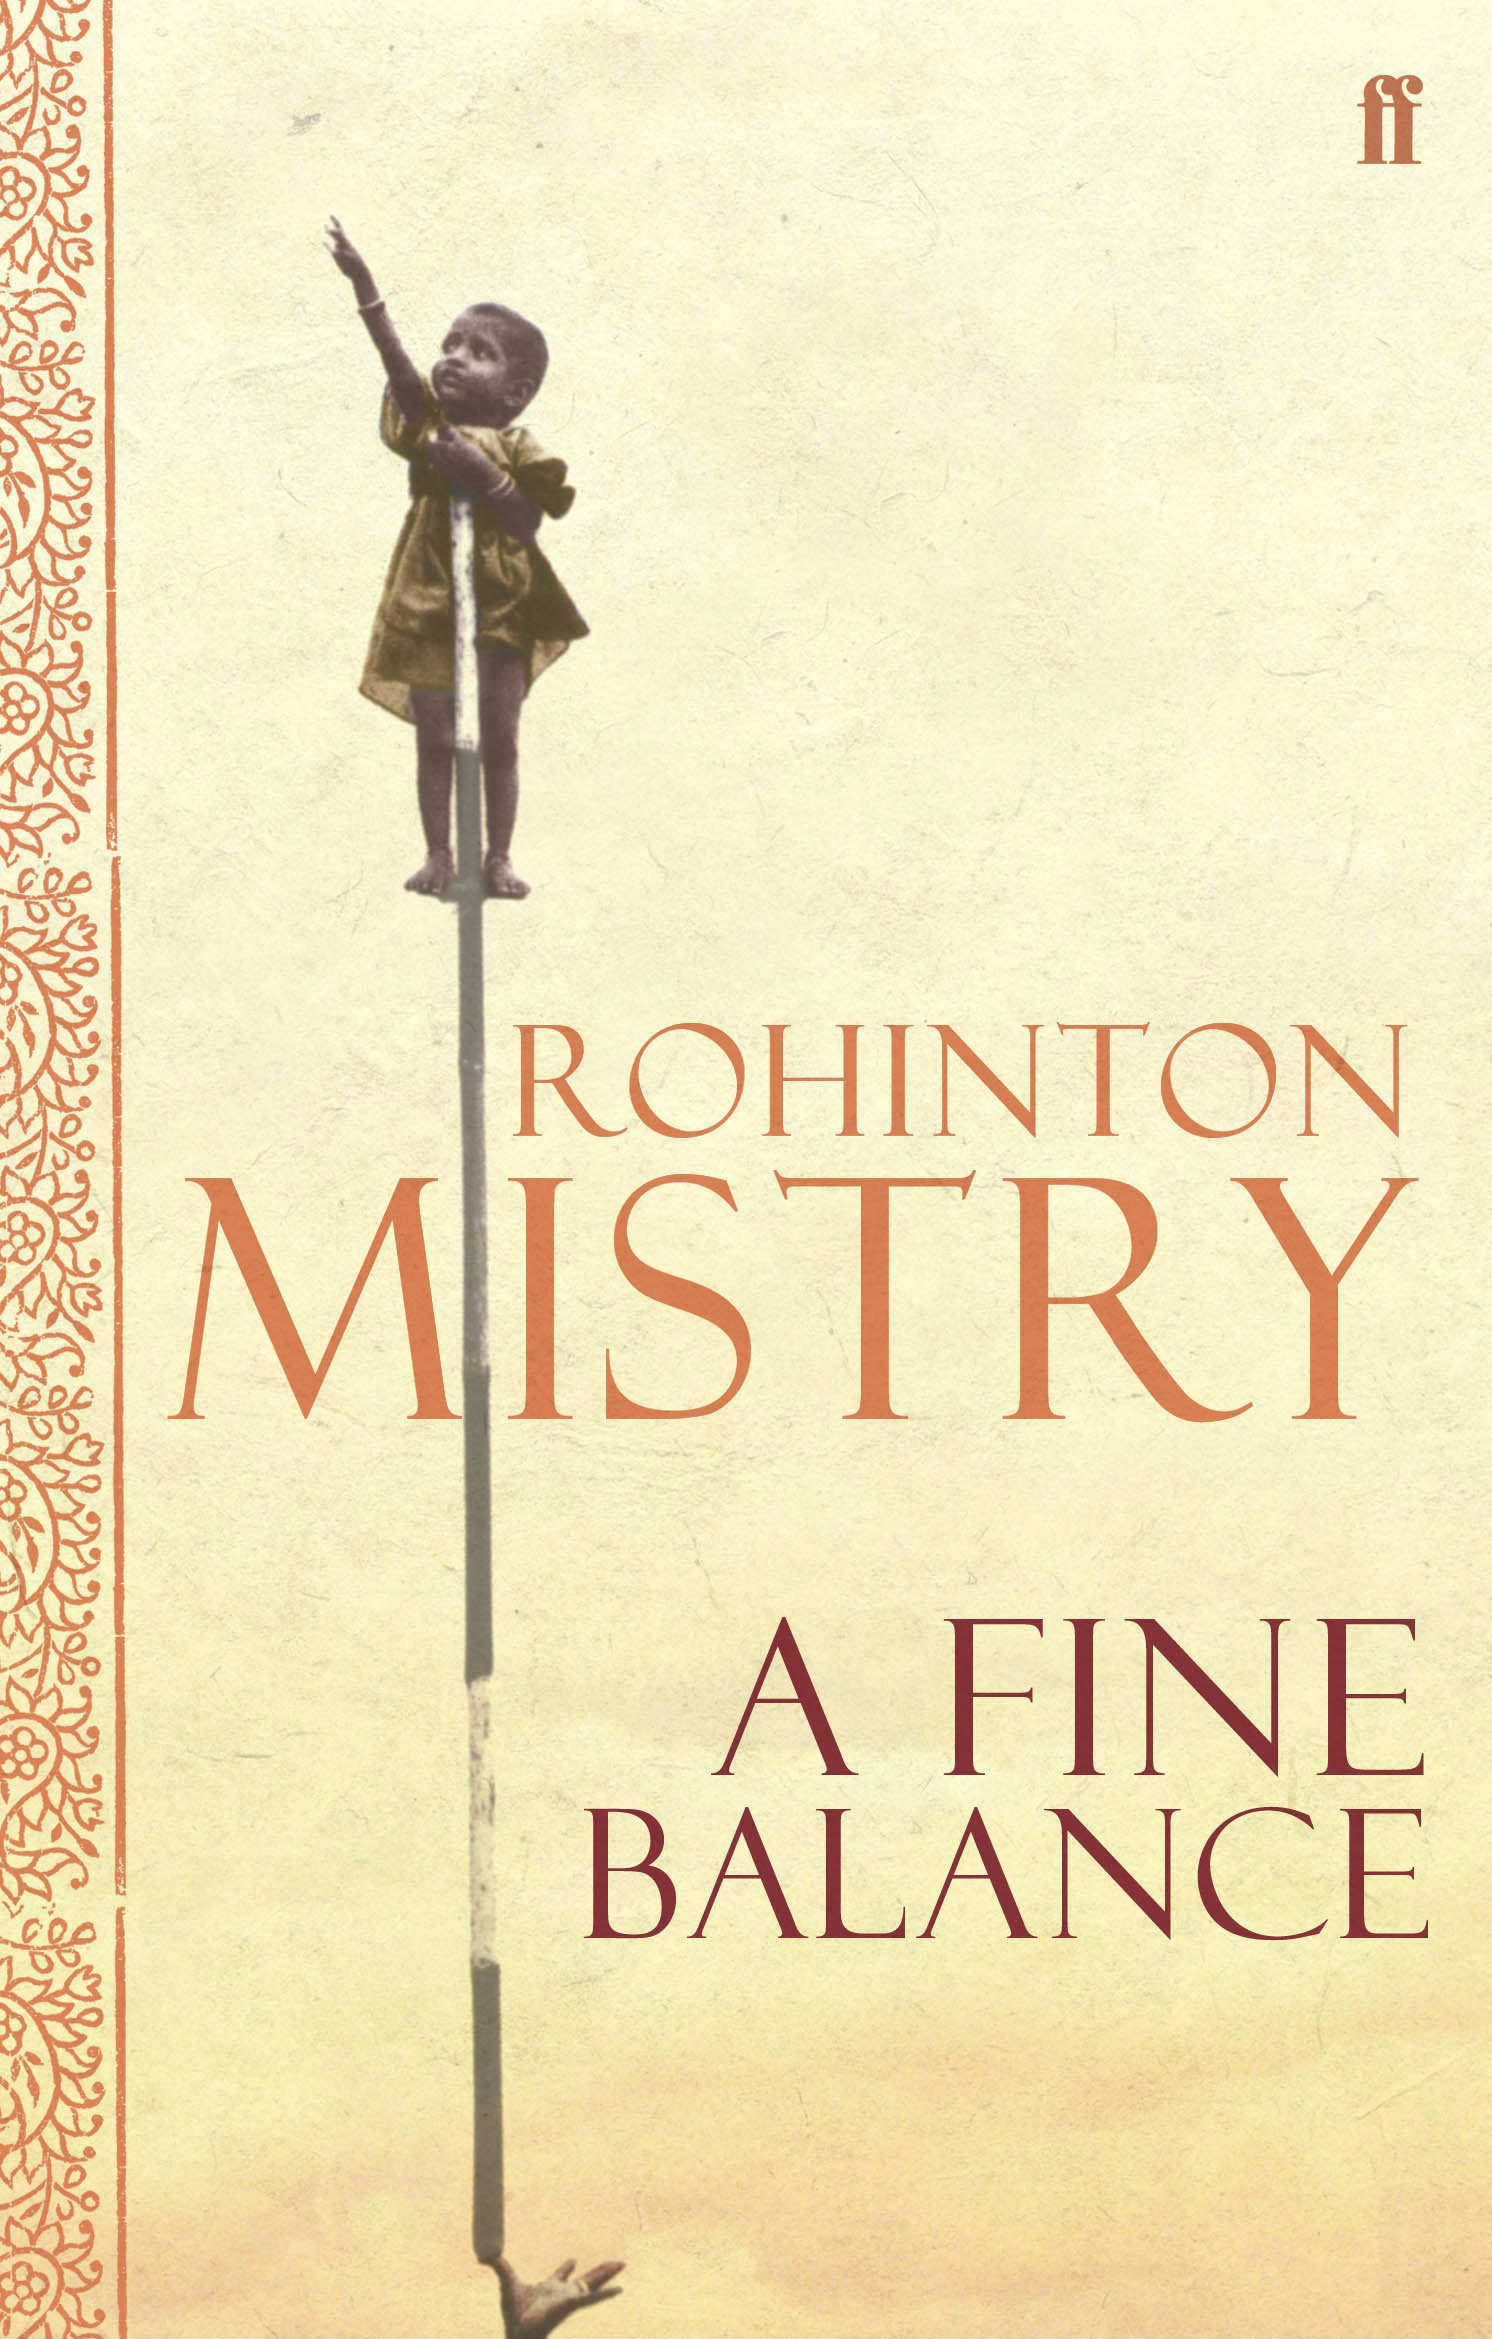 Image result for A Fine Balance - Rohinton Mistry